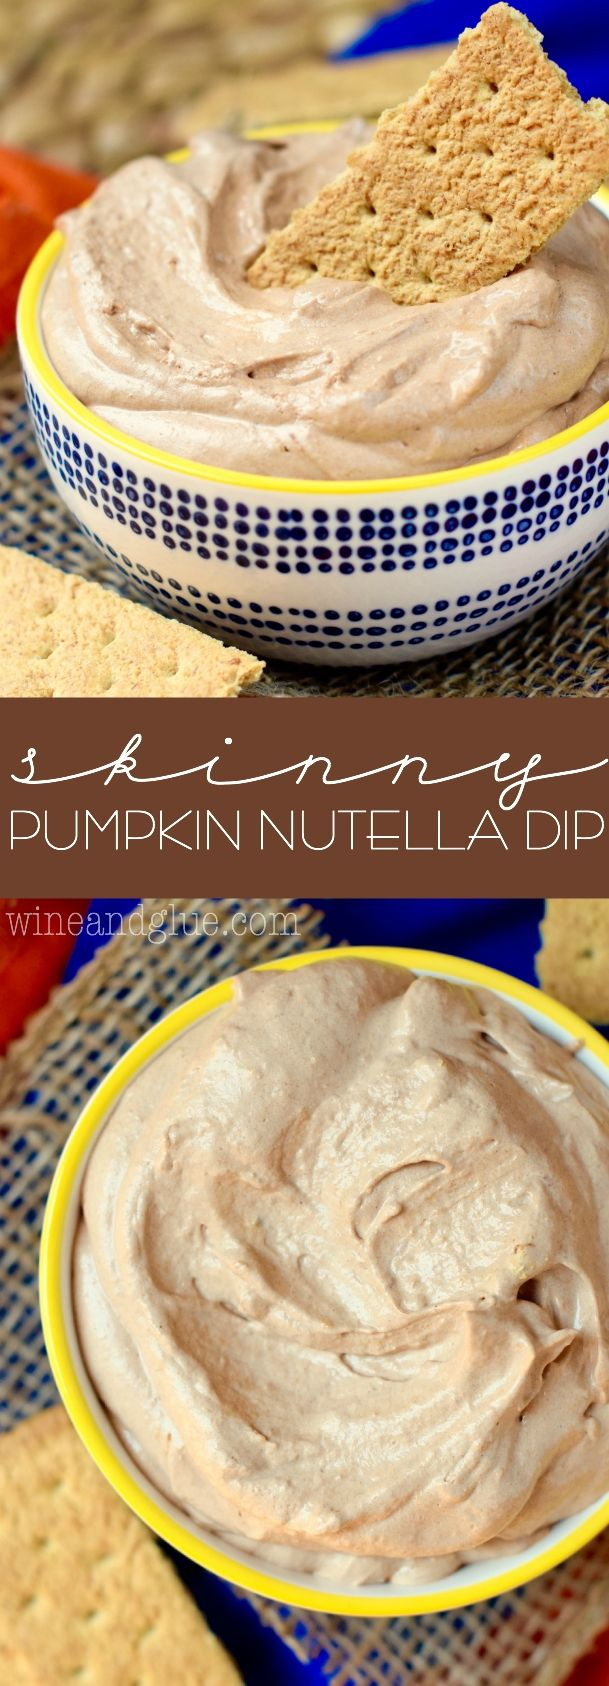 Skinny Pumpkin Nutella Dip | Three ingredients of pure deliciousness!